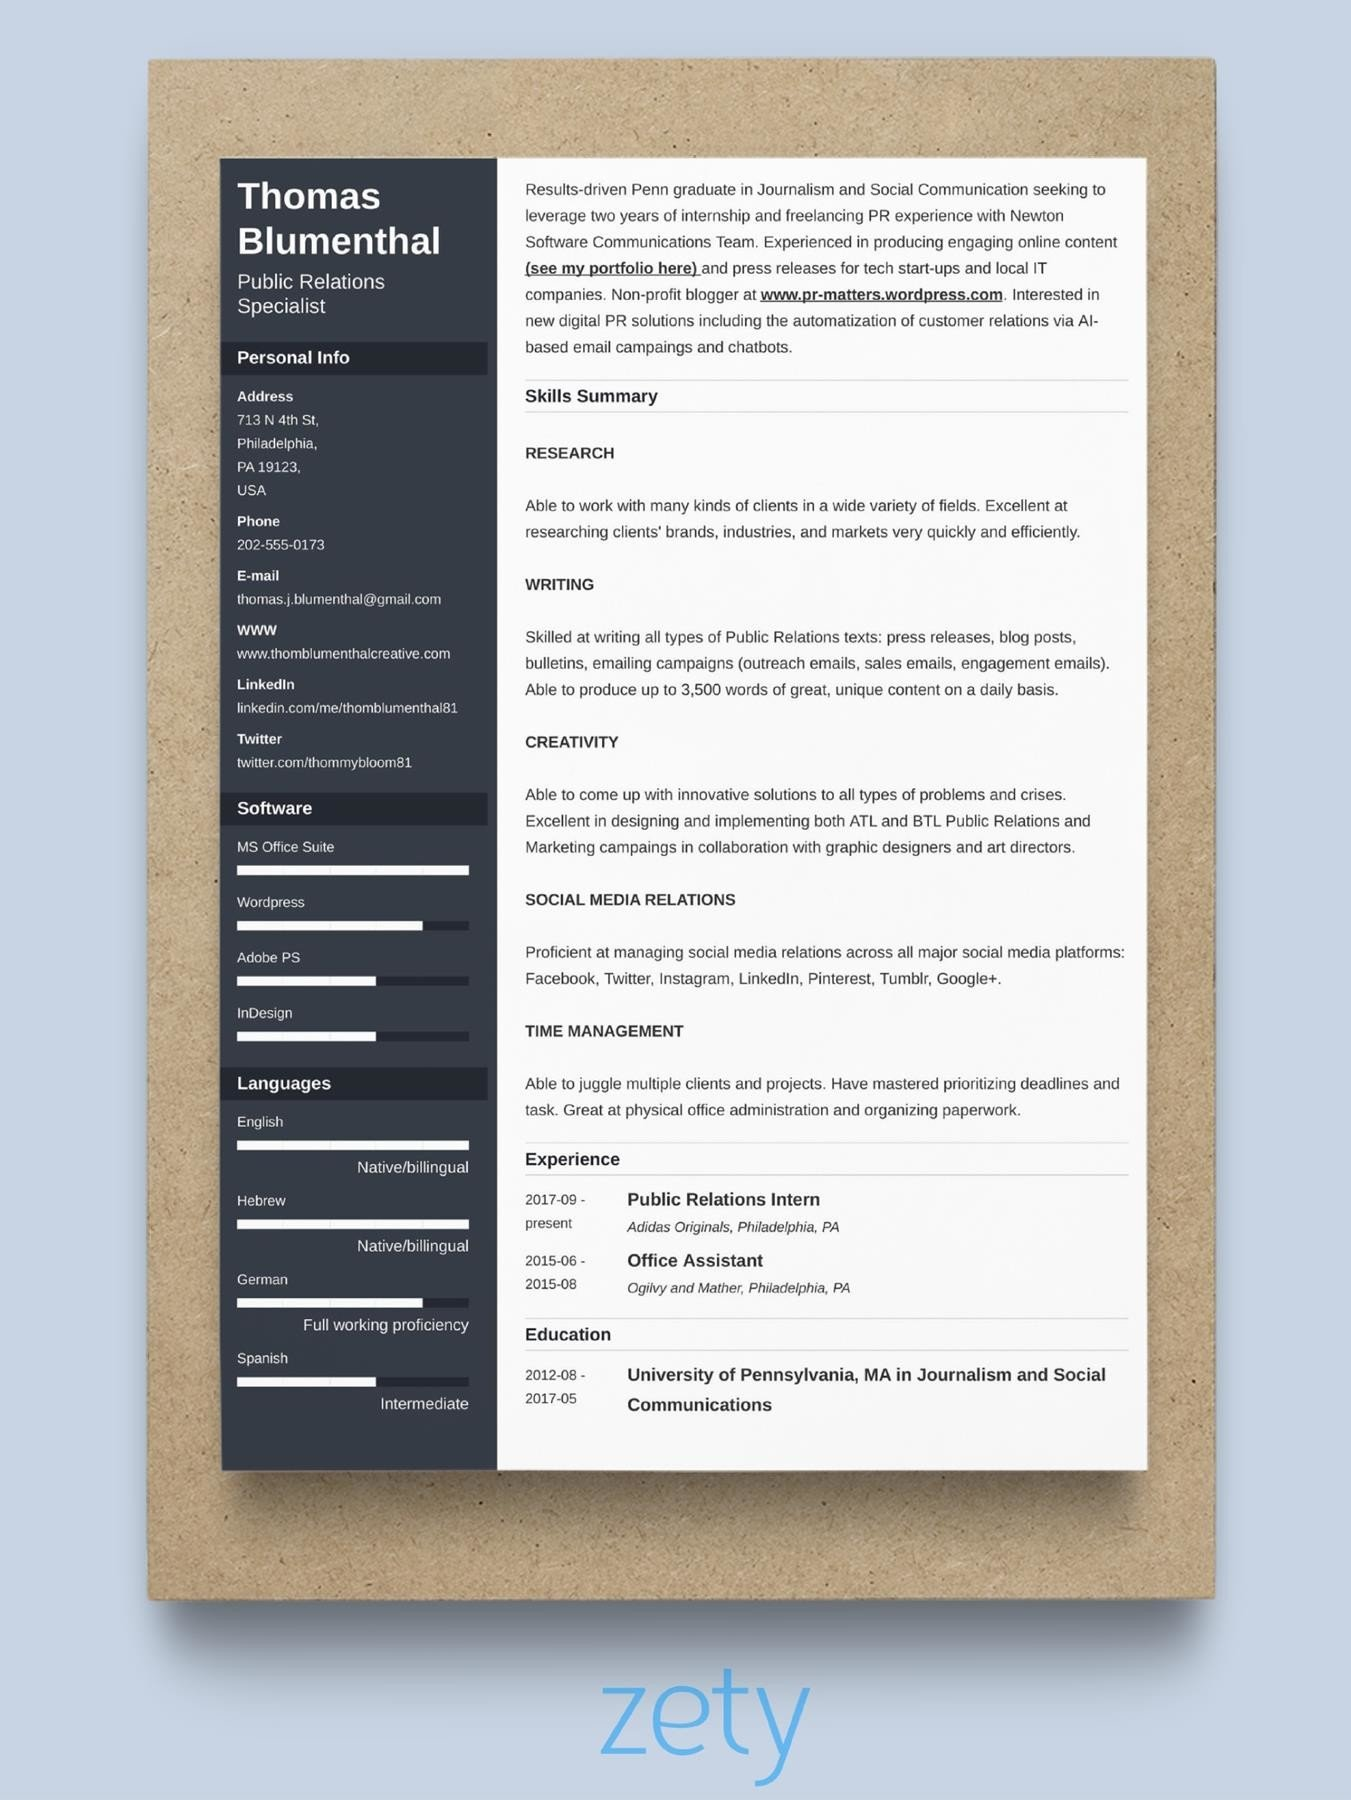 resume structure to organize of writing format management consultant free converter Resume Structure Of Resume Writing